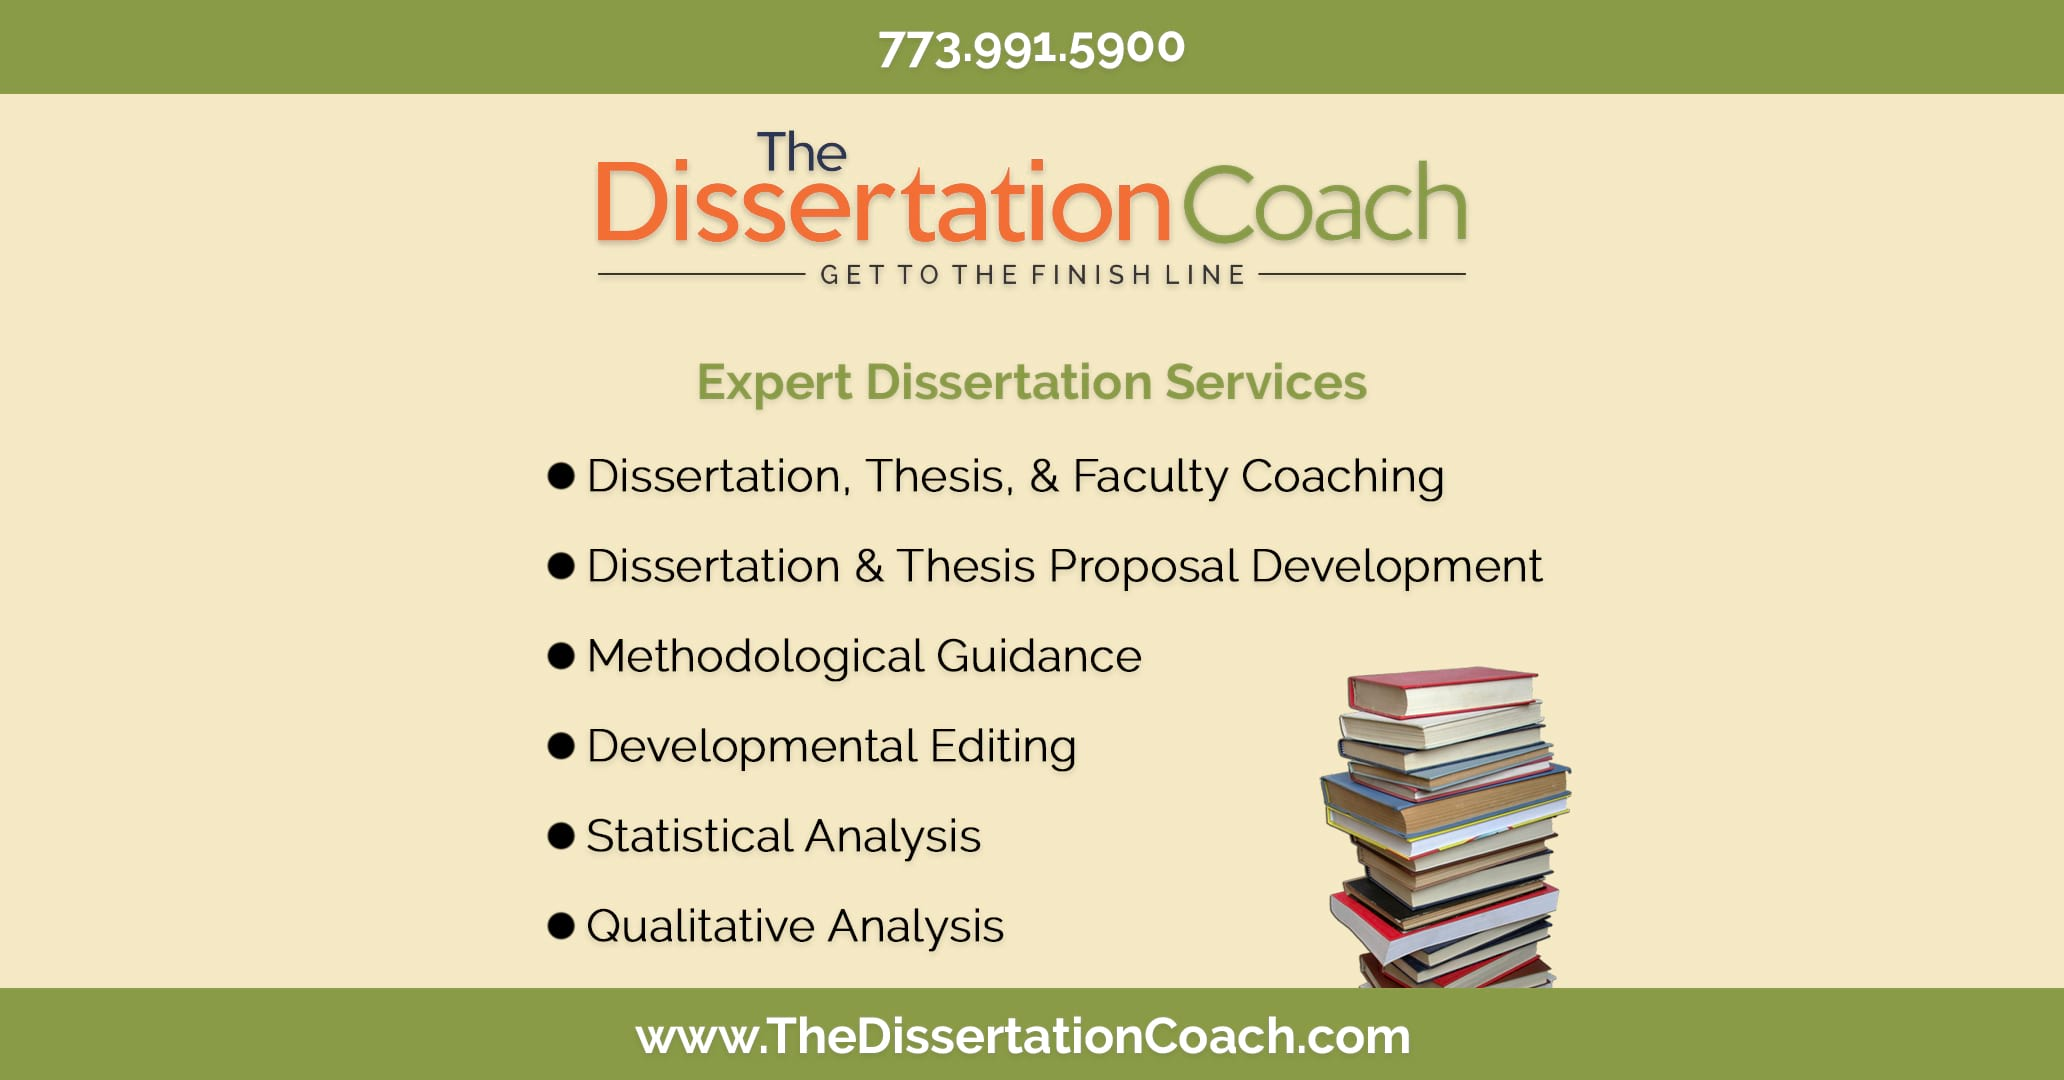 You need dissertation writing help?